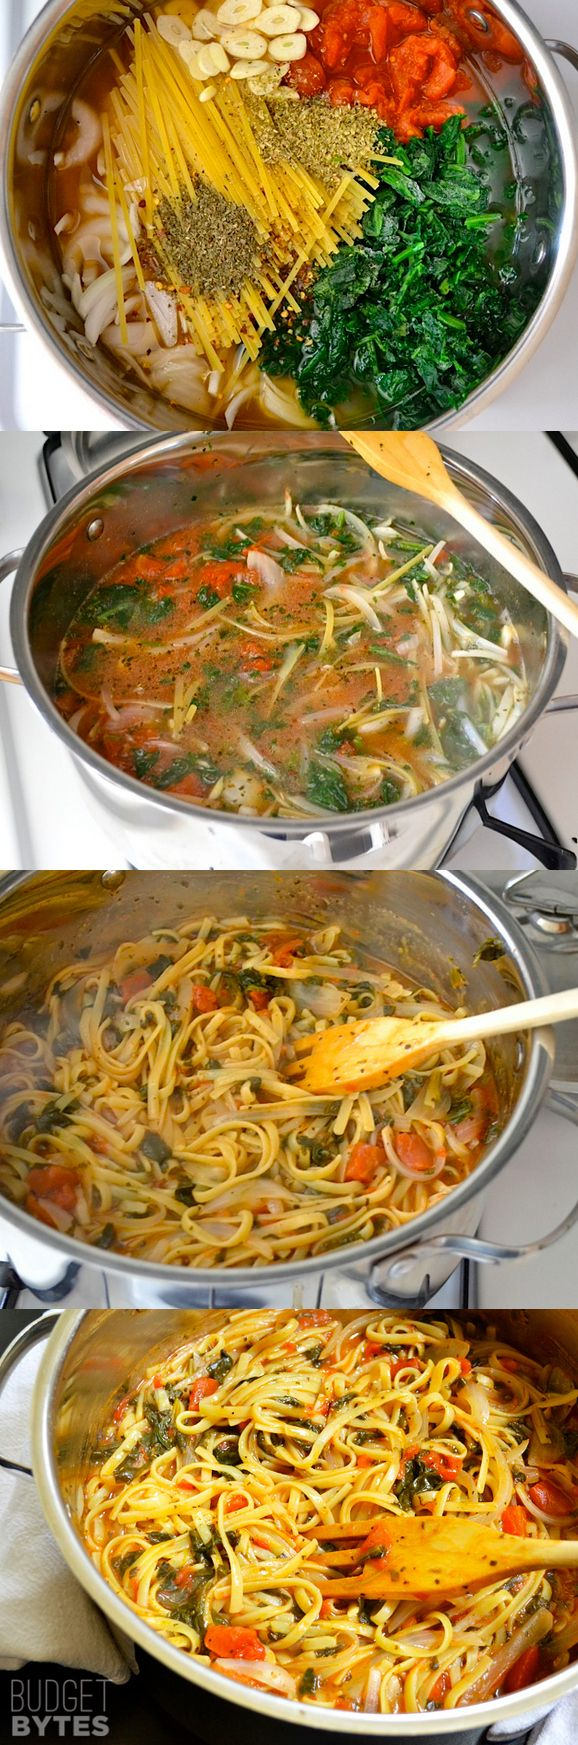 Ingredients 4 cups vegetable broth $0.52 2 Tbsp olive oil $0.32 12 oz. fettuccine $1.33 8 oz. frozen chopped spinach $0.79 1 (28